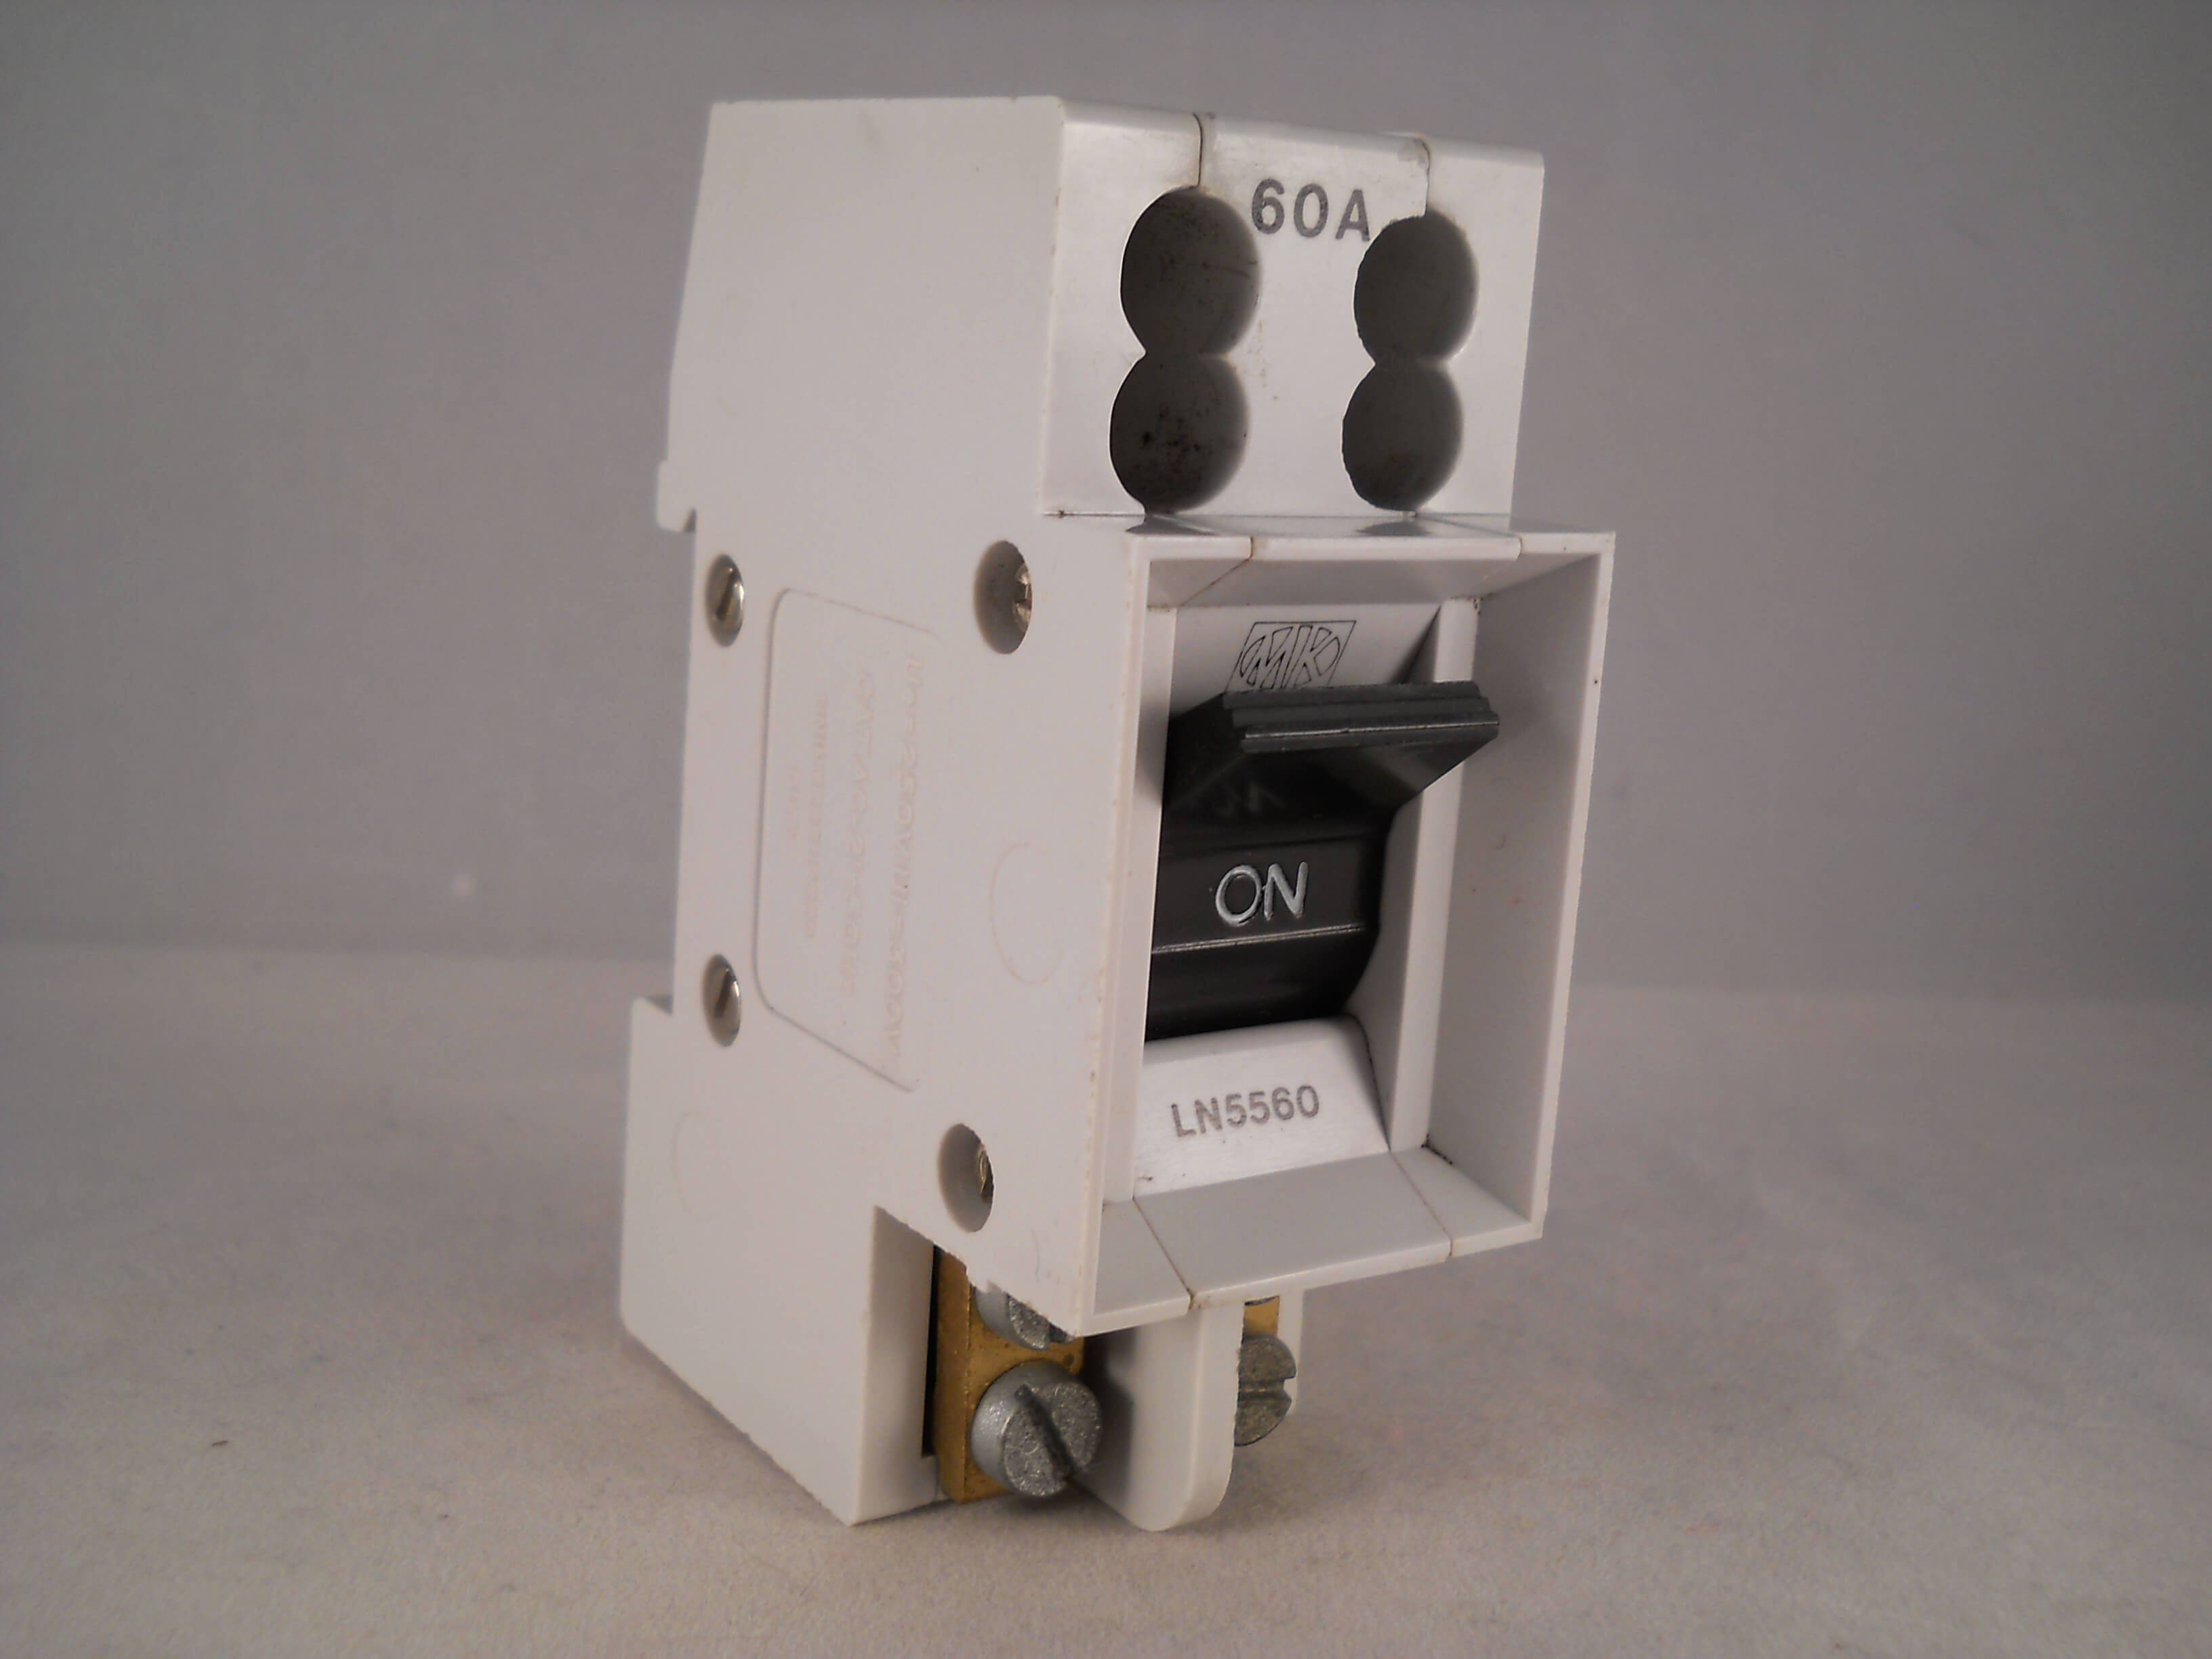 MK 60 Amp Main Switch Disconnector 60A Double Pole Isolator Sentry ...